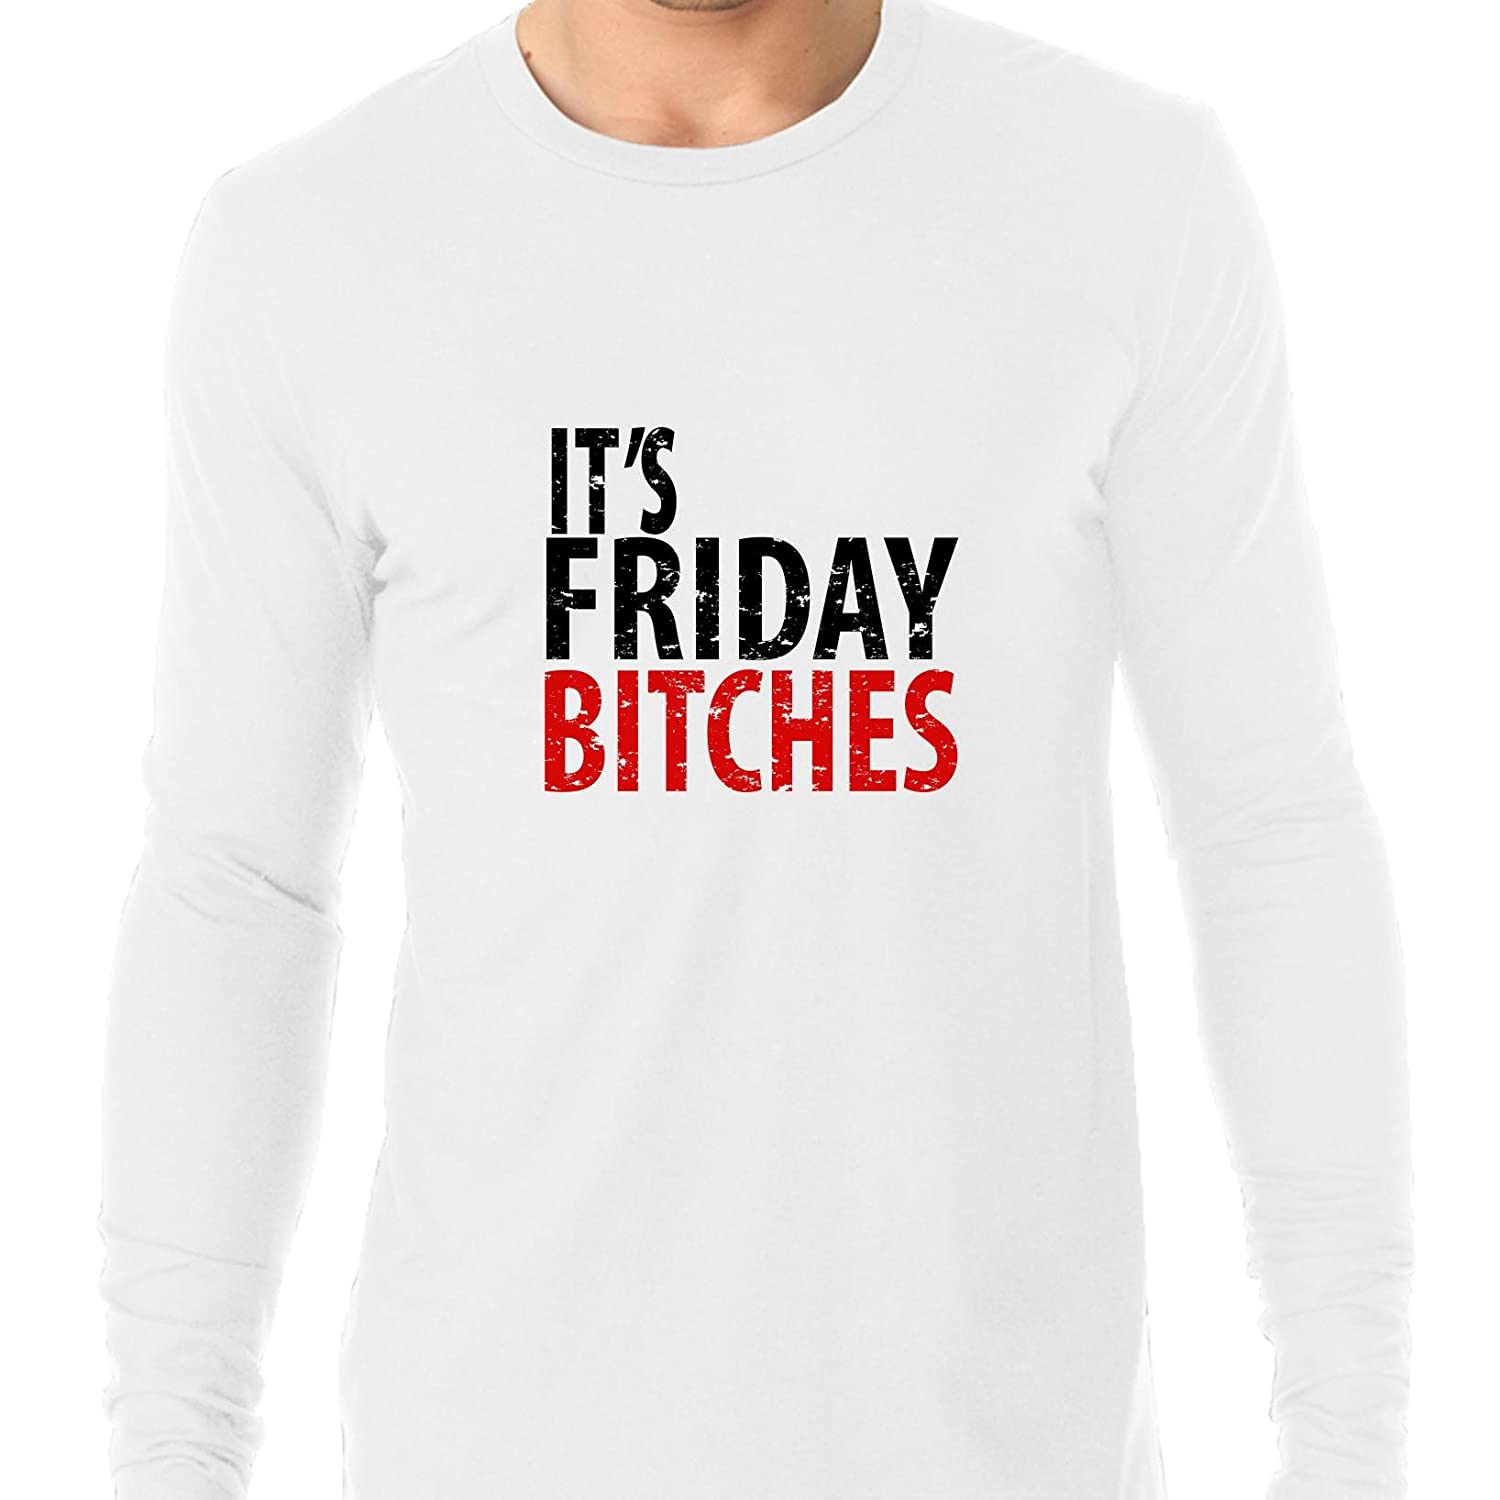 8a97e59fb1f2ba Amazon.com: It's Friday Bitches - Celebrate The Weekend In Red & Black  Men's Long Sleeve T-Shirt: Clothing